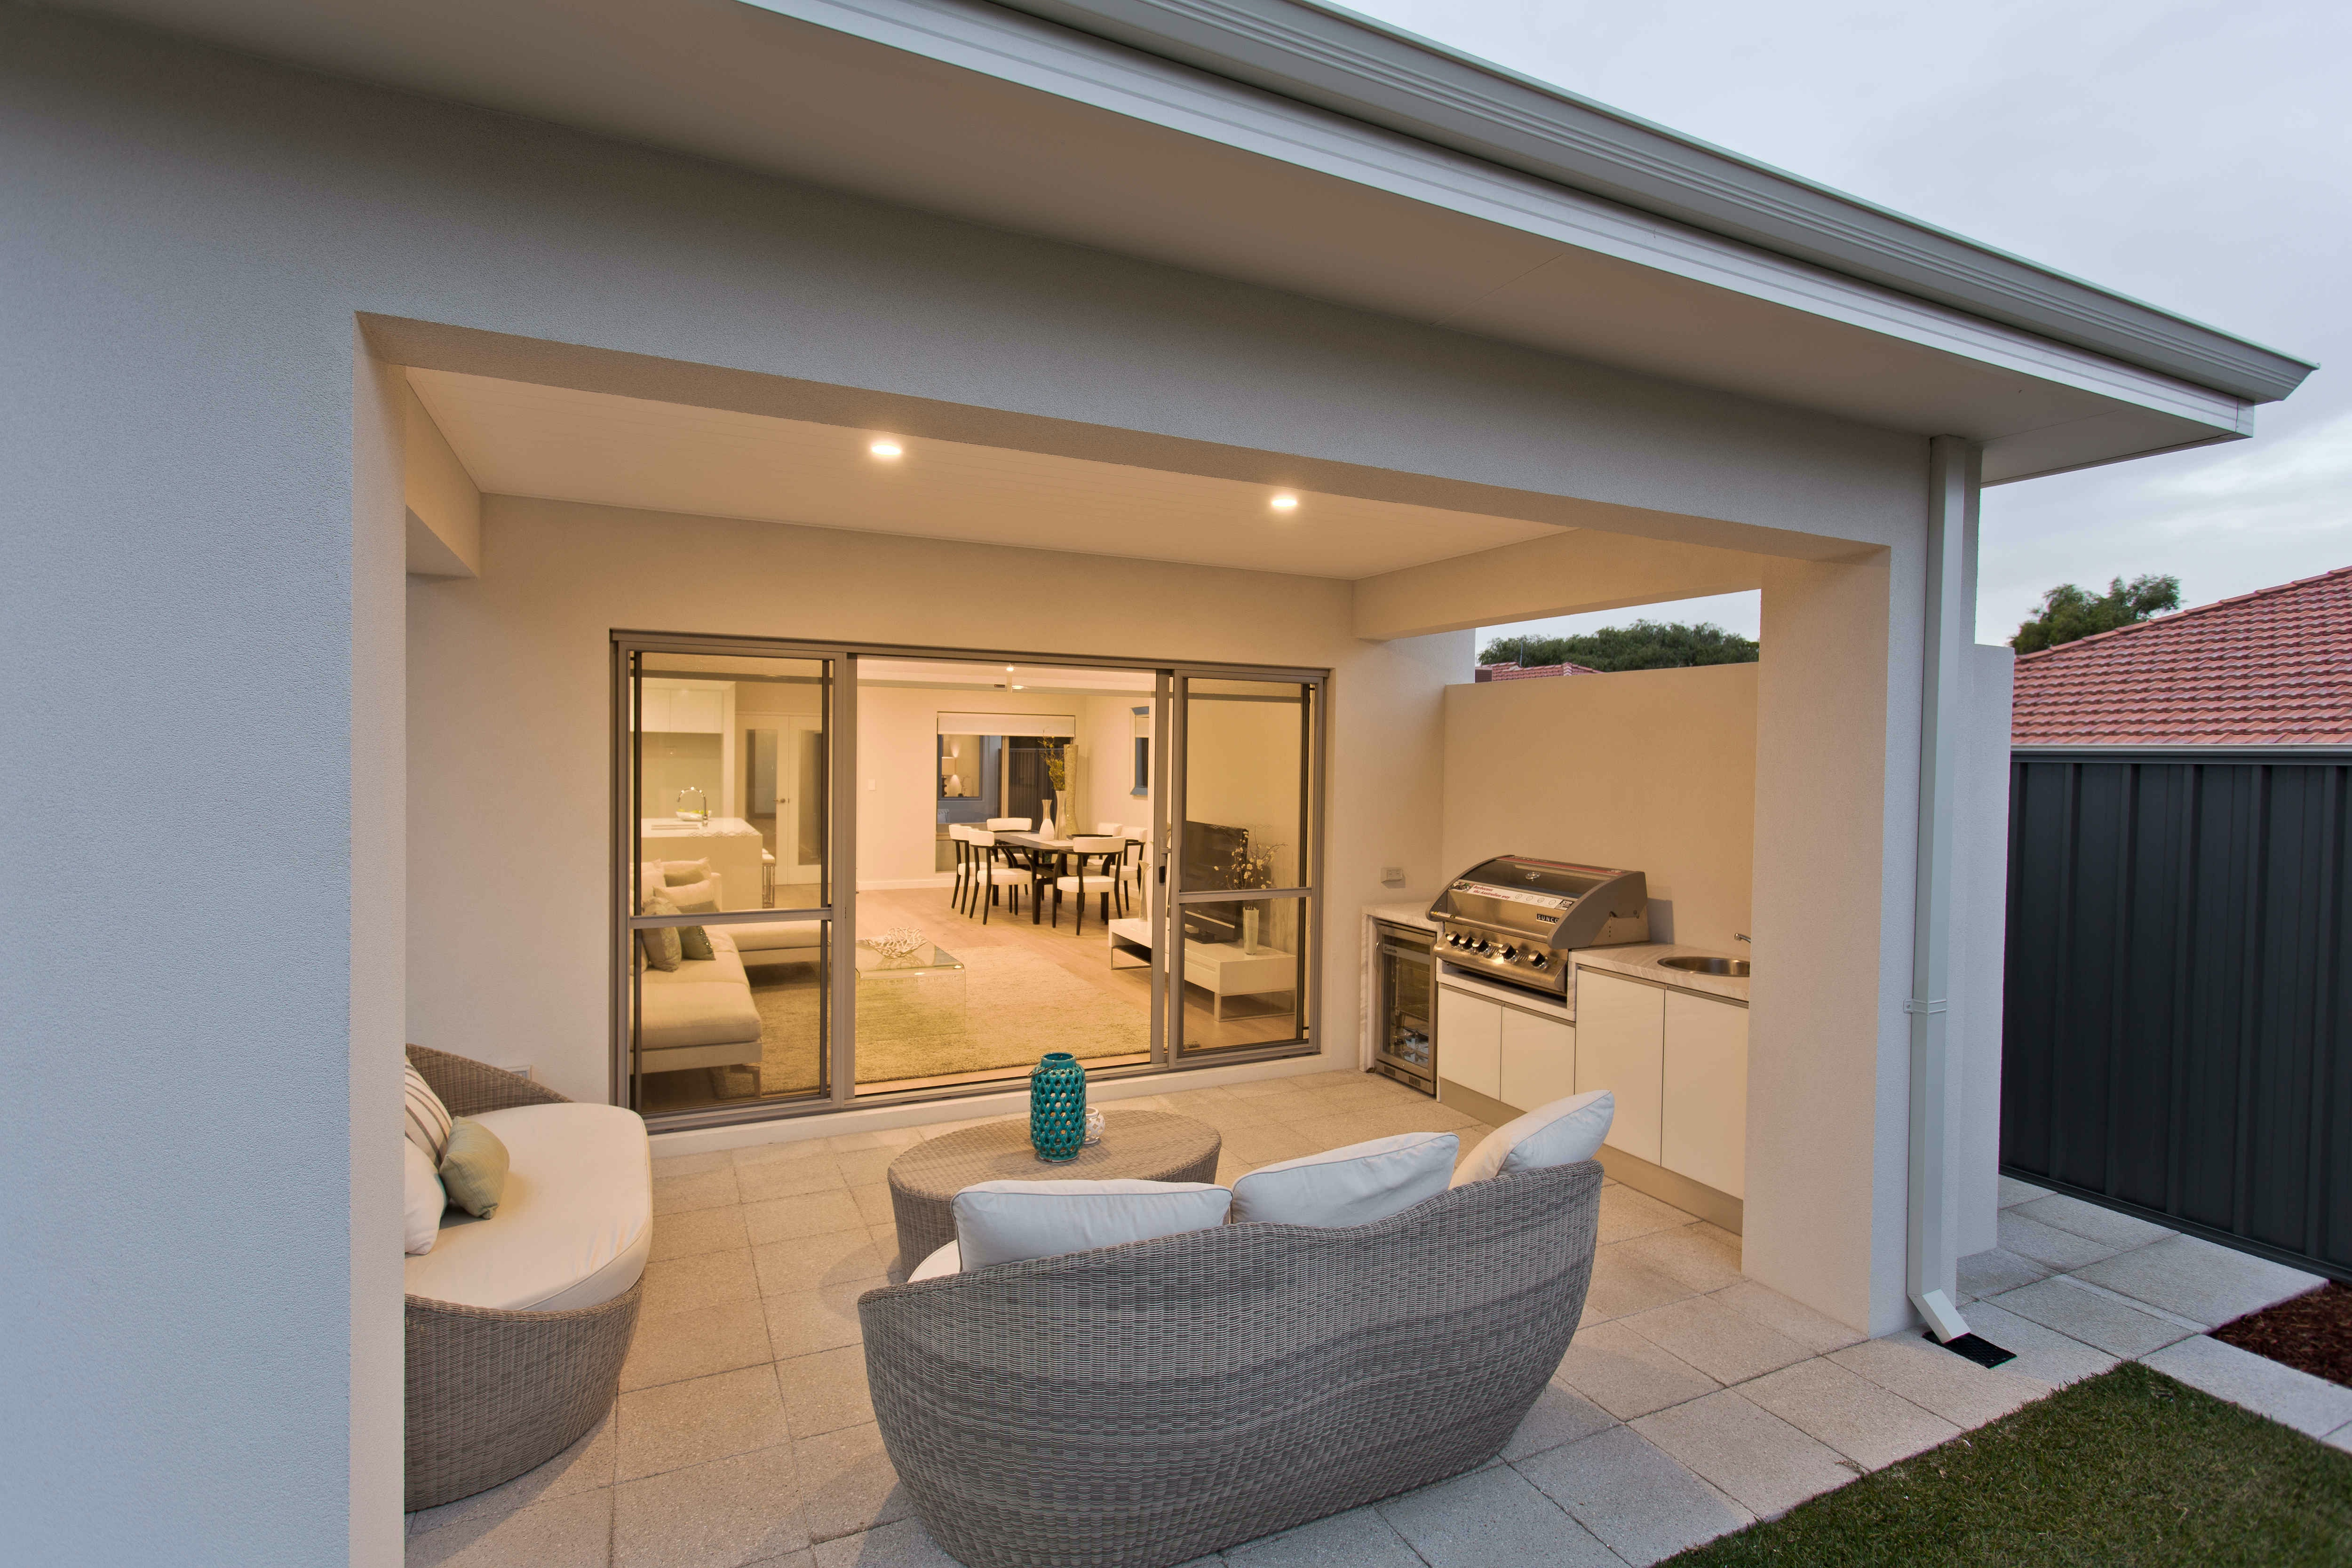 Greystone Quartz Pavers - Alfresco Perth